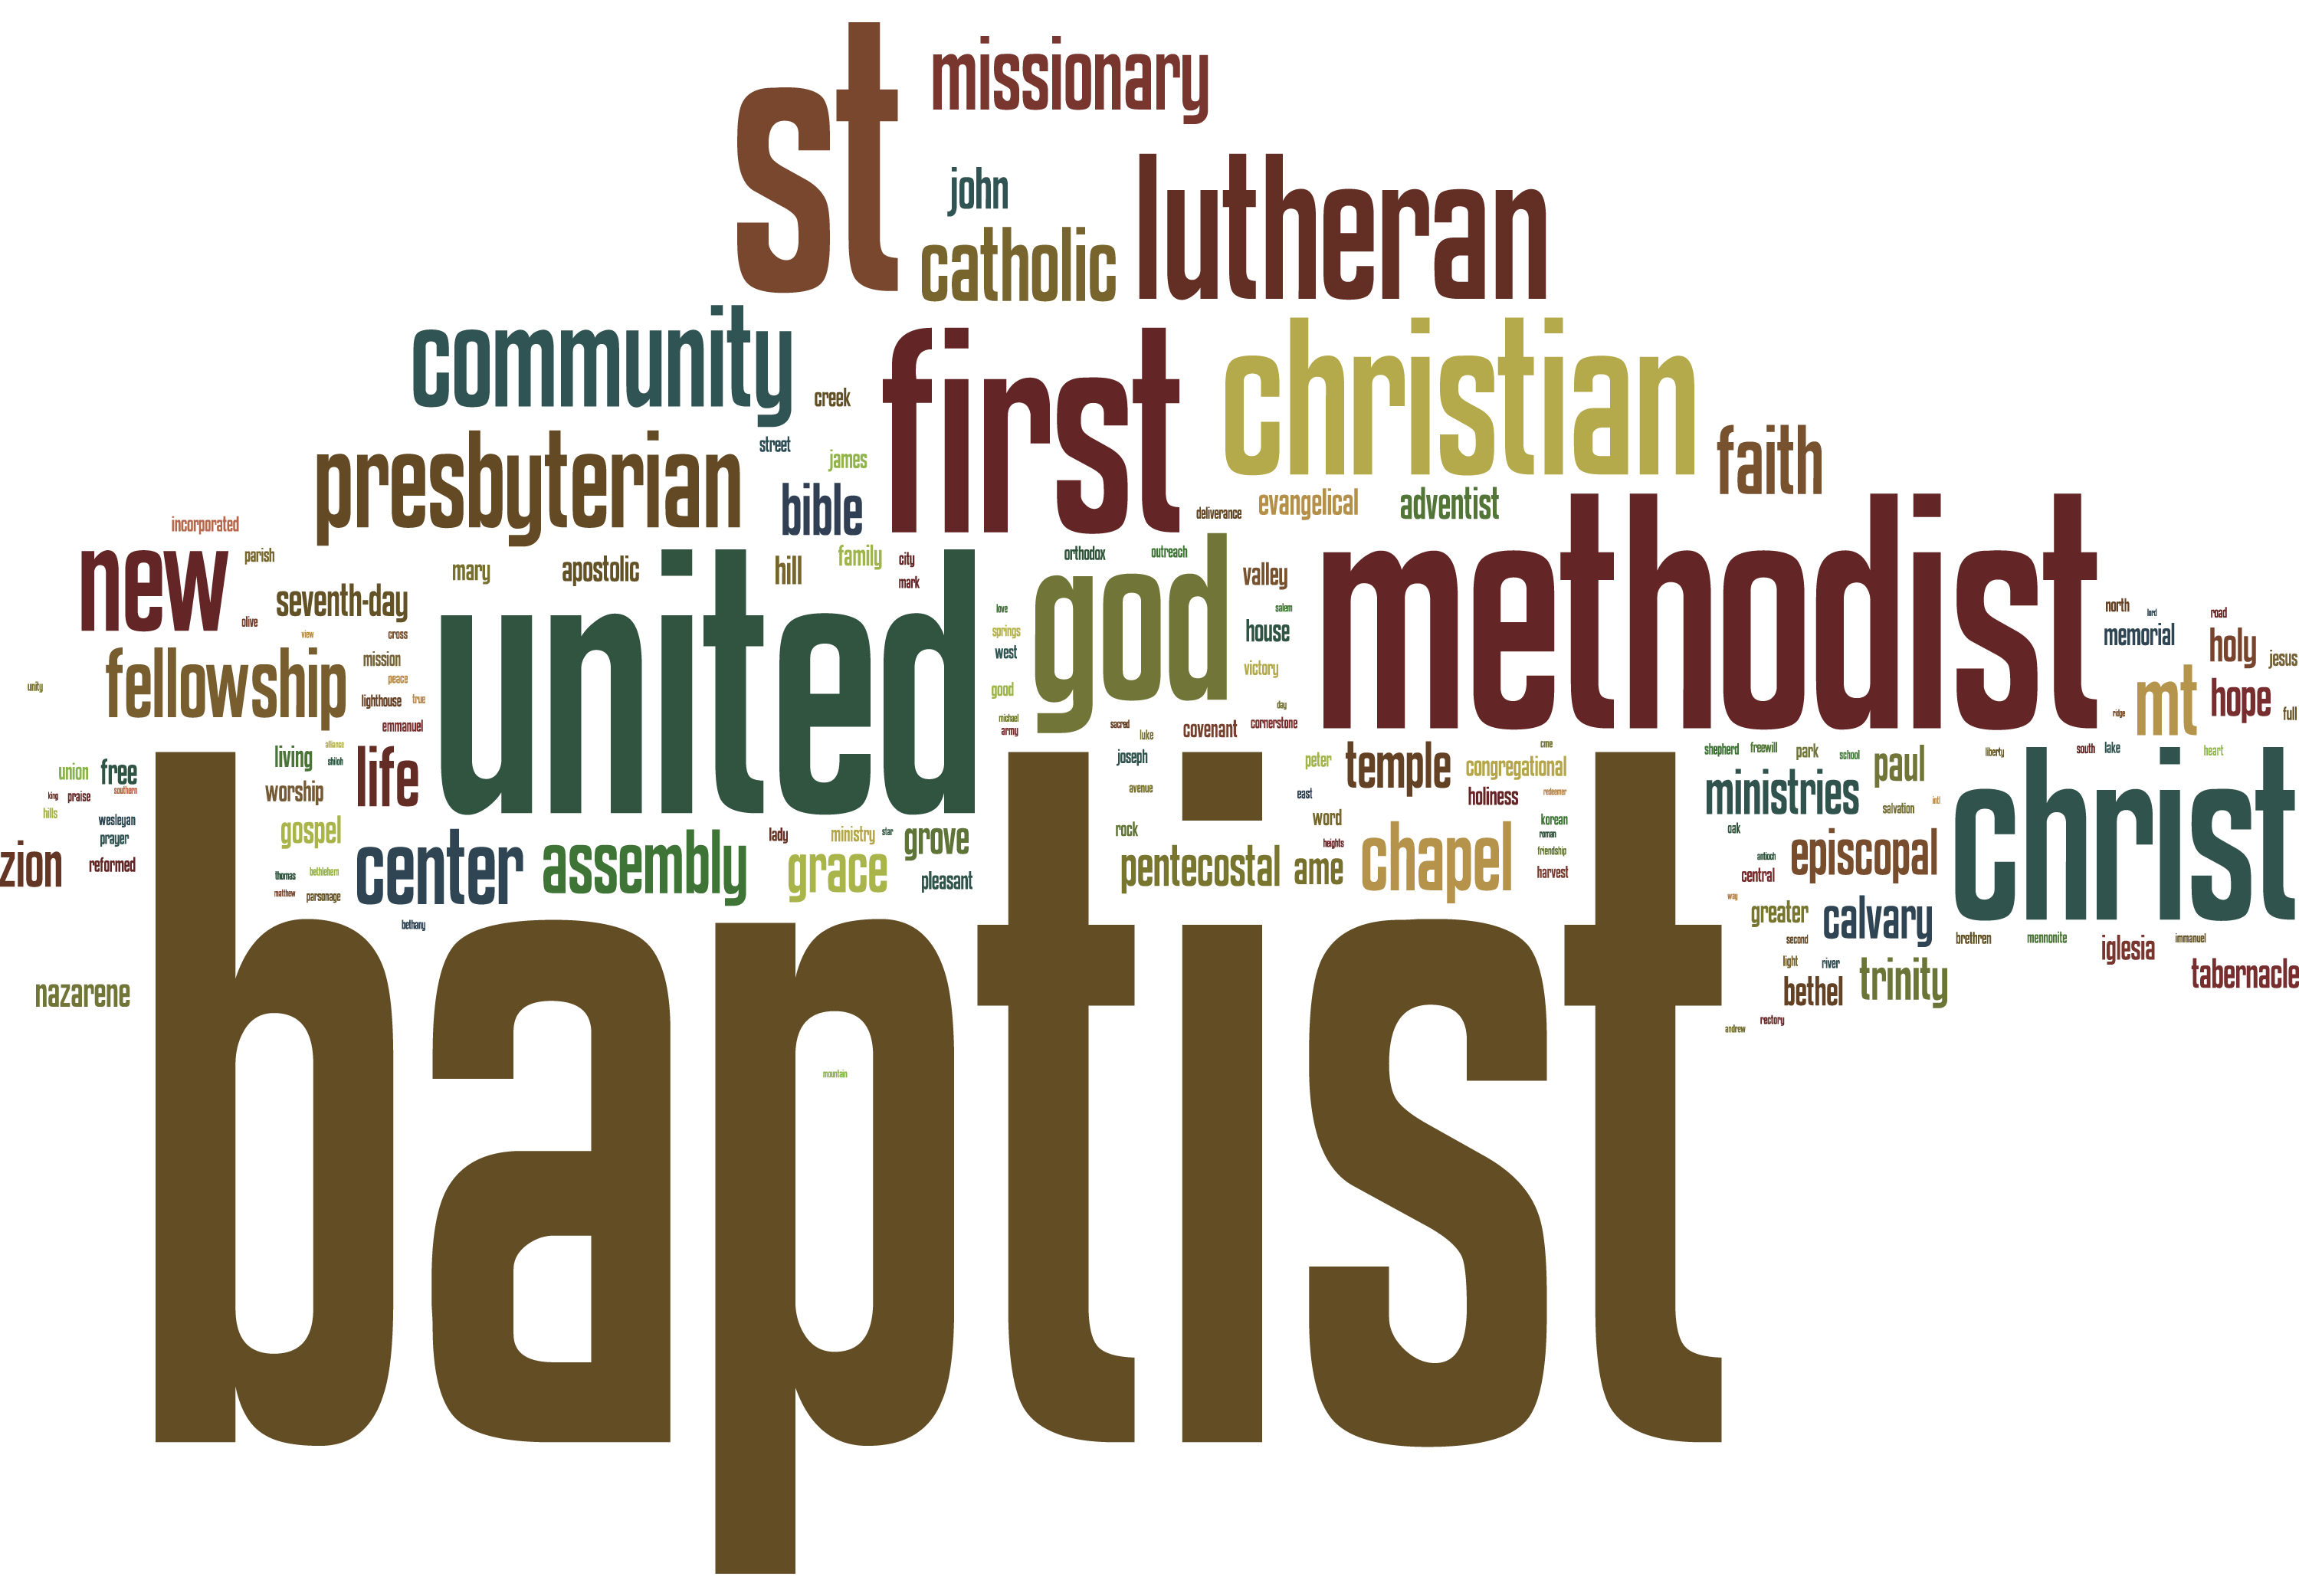 Church Names in the U.S. « OpenBible.info Blog